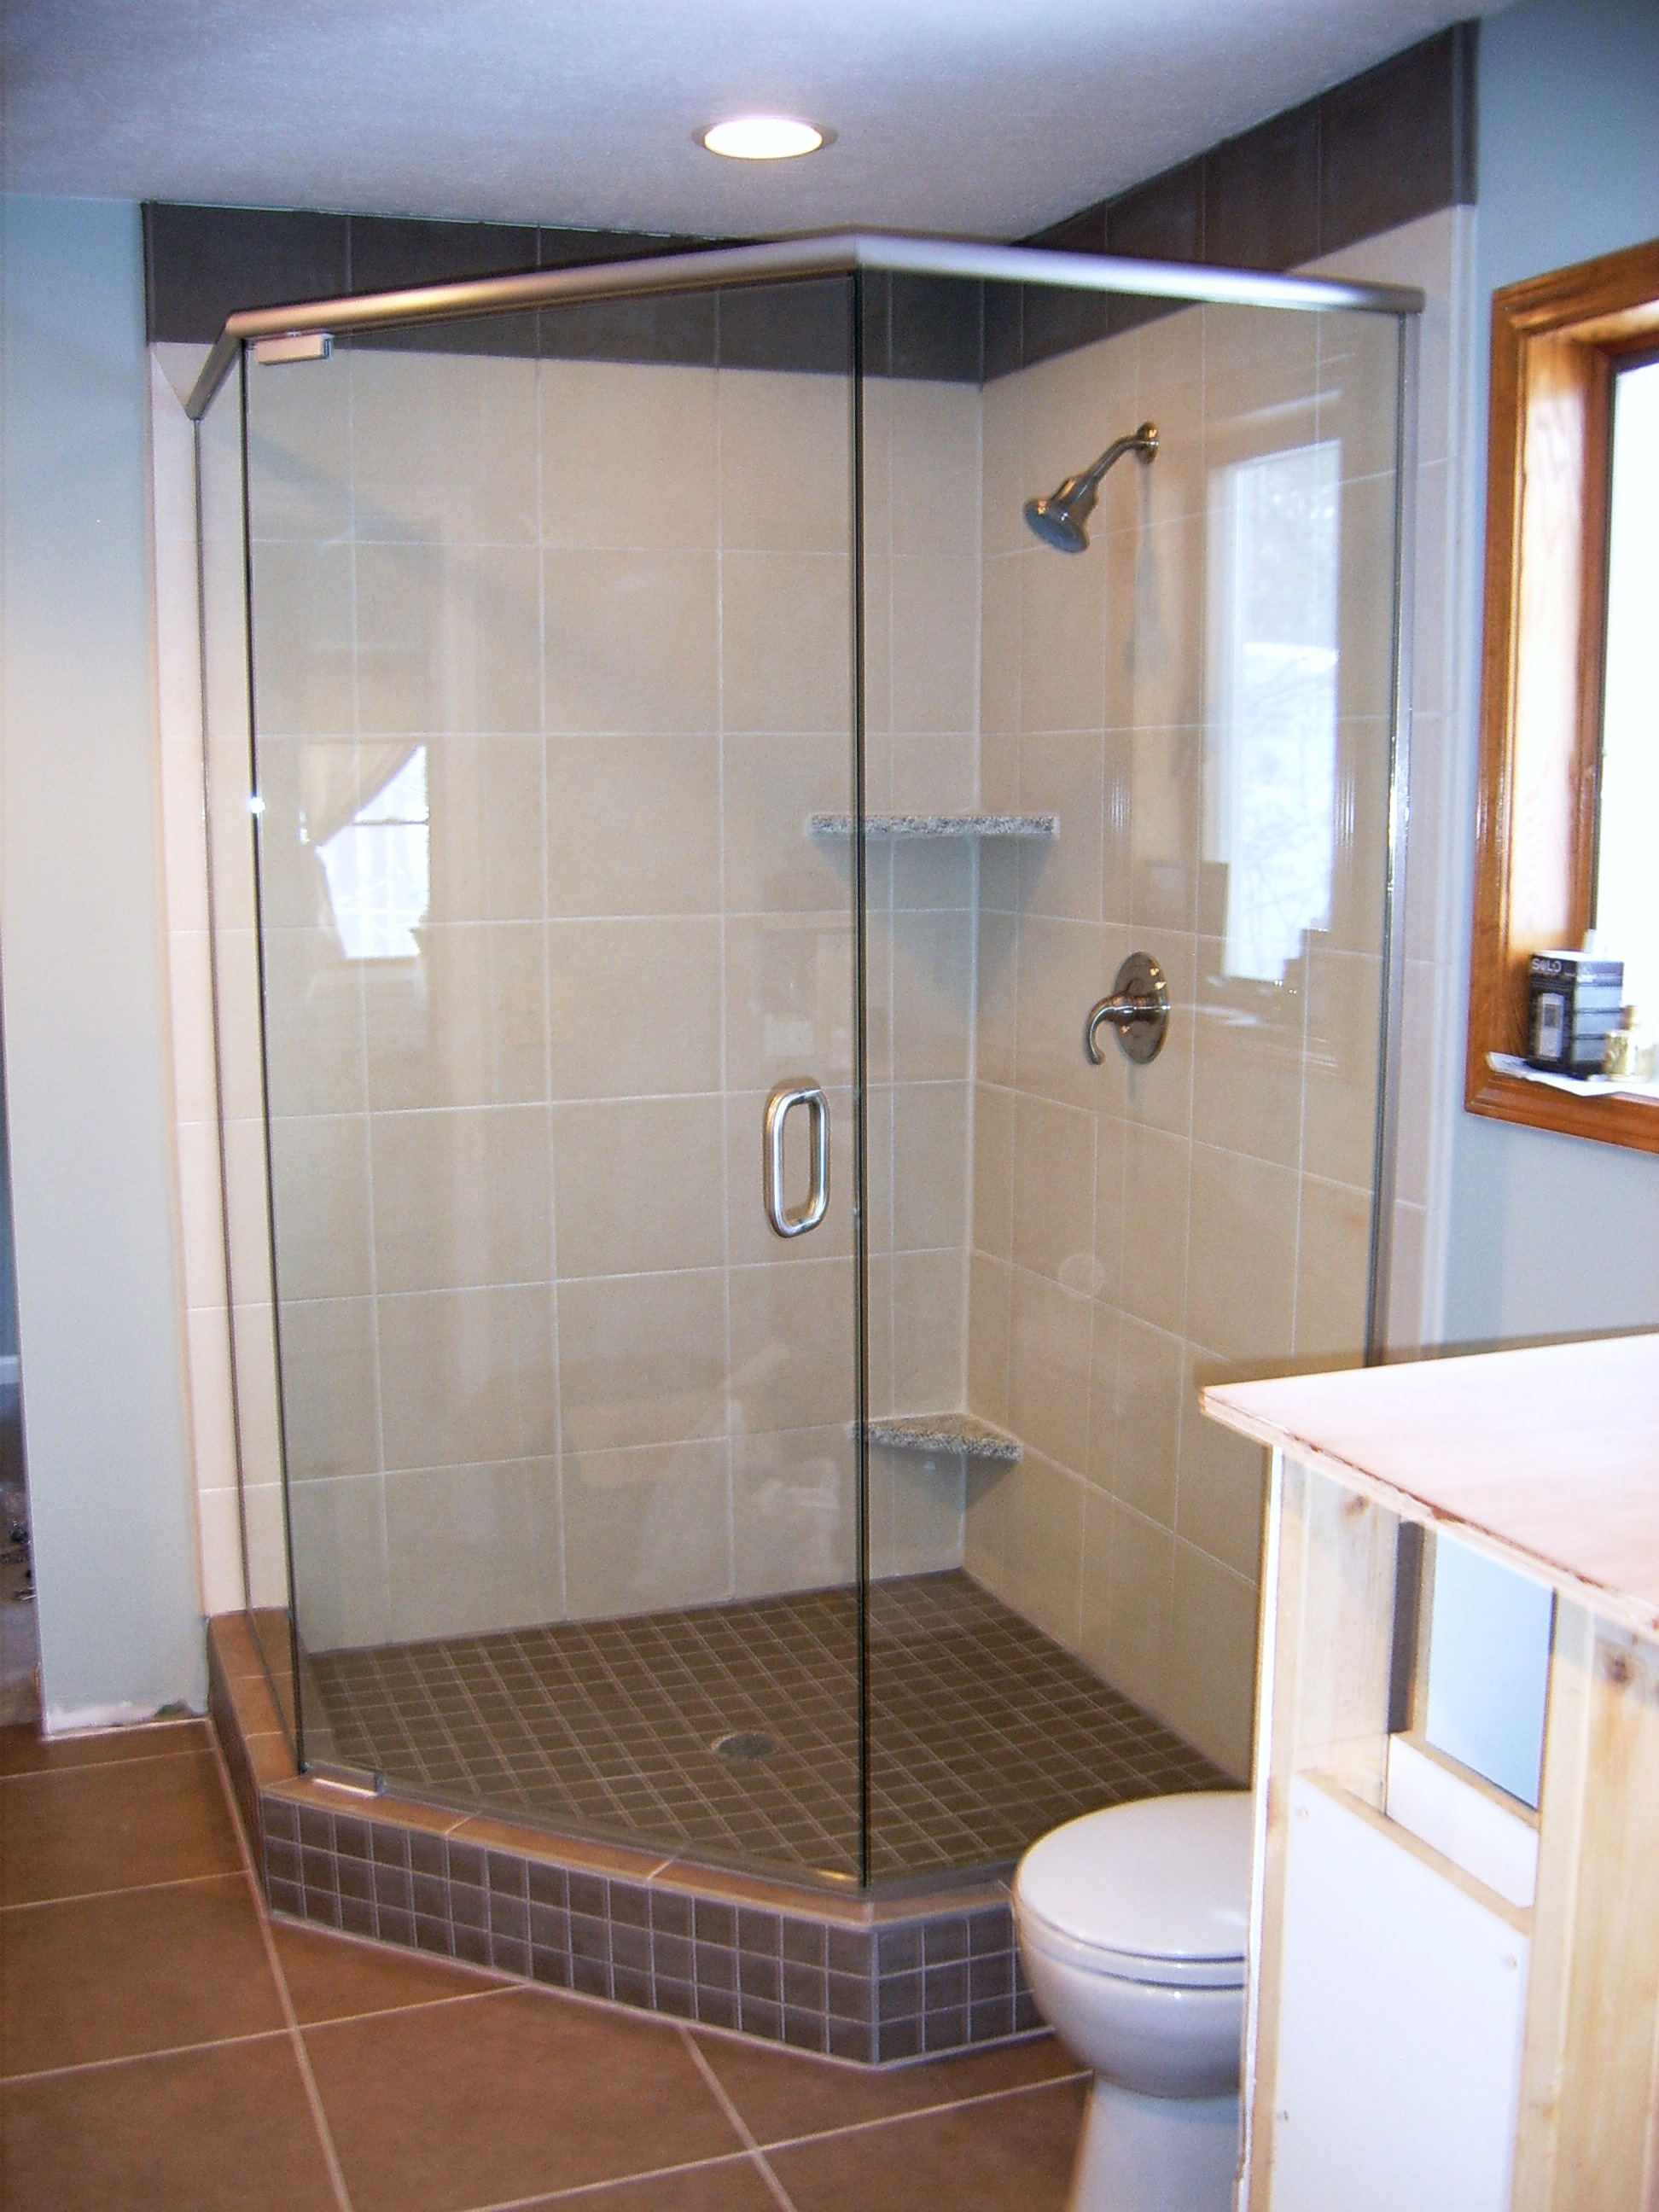 octagon style shower glass door brown tile traverse city - twin bay glass